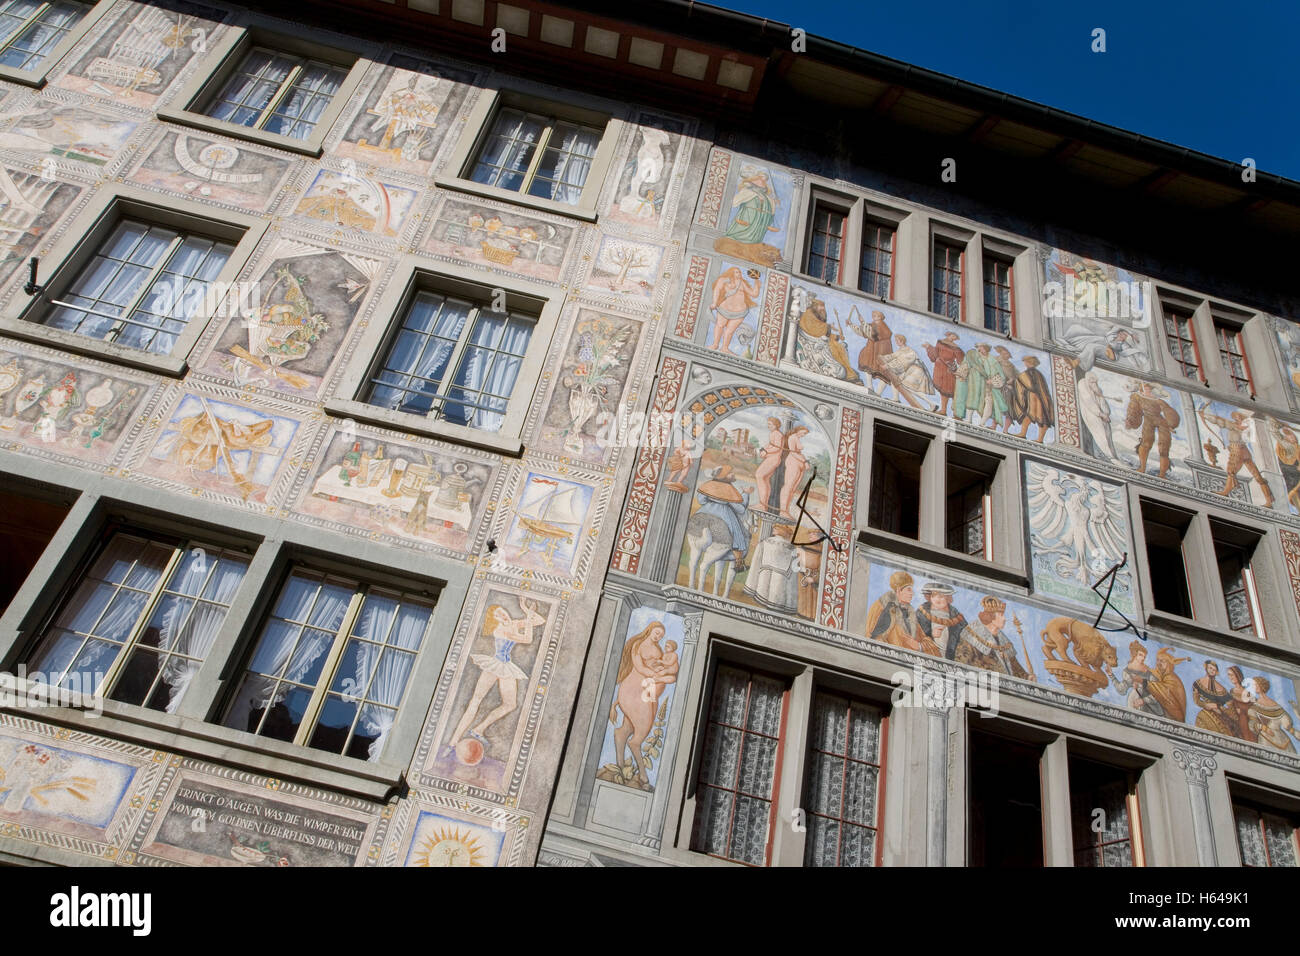 Houses on the town hall square, sign for Hotel Sonne, wine bar, murals, bay windows, Stein am Rhein, Lake Constance Stock Photo